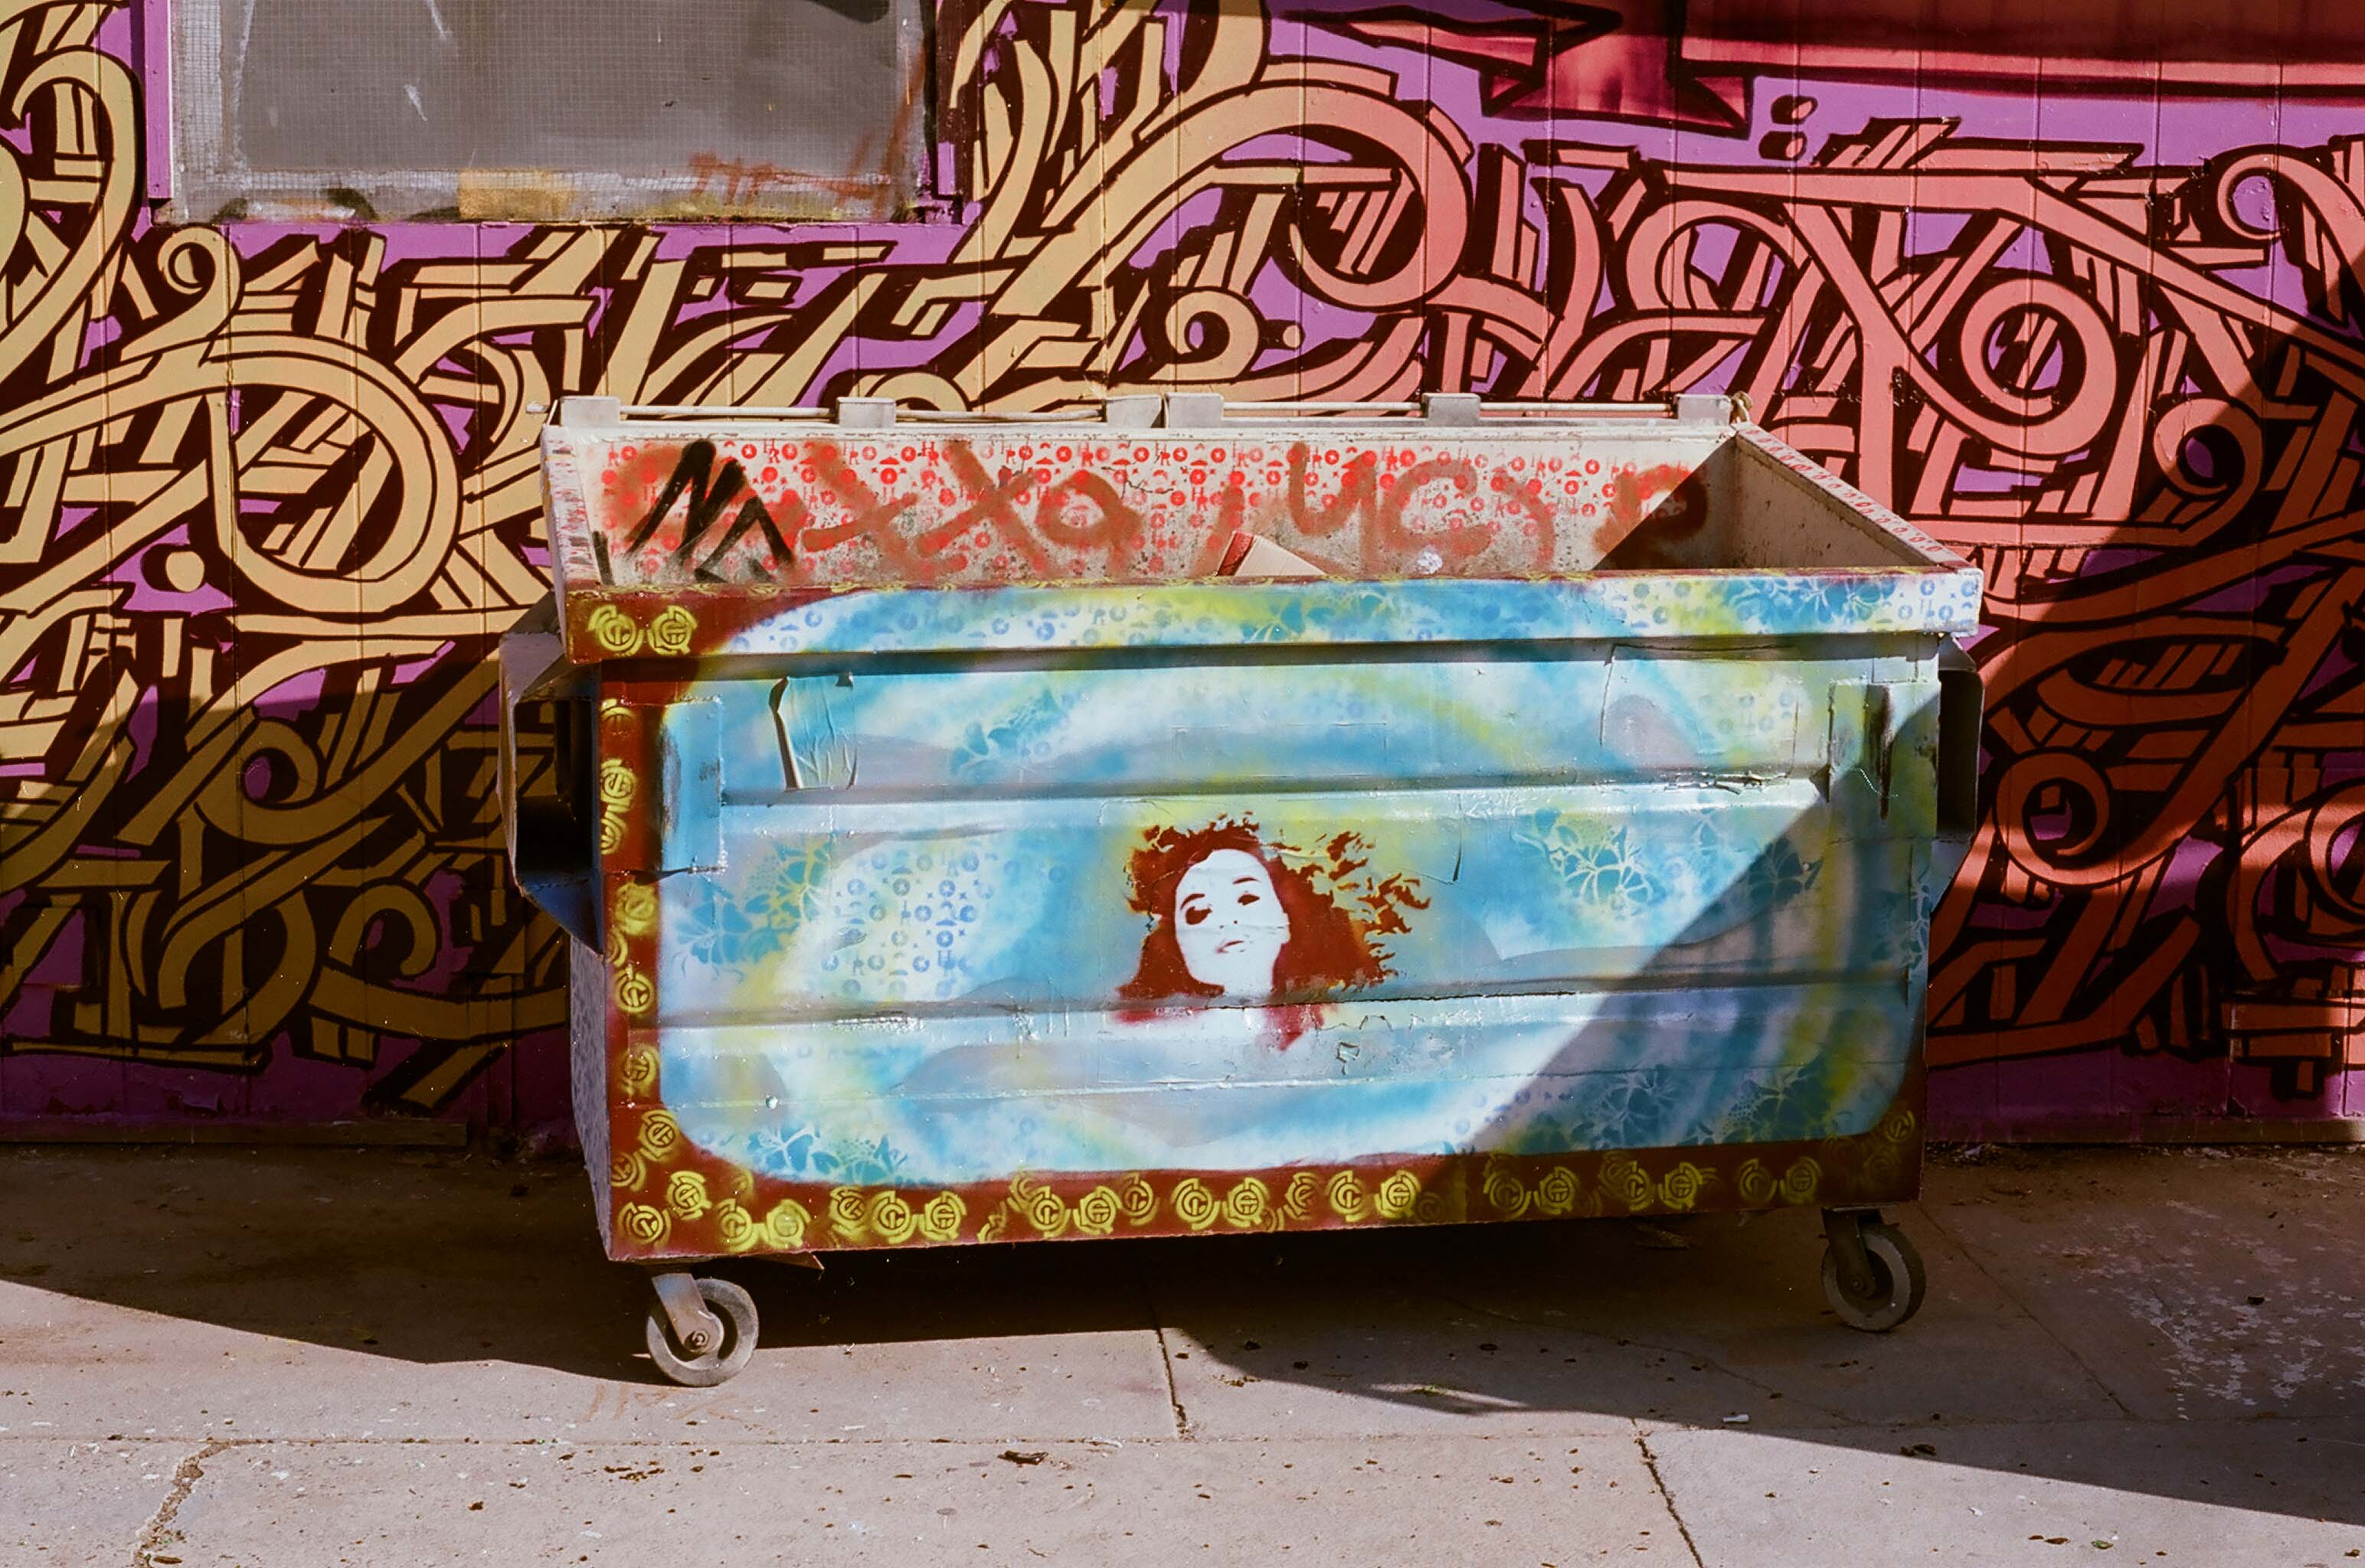 2010-phx-graffiti-dumpster